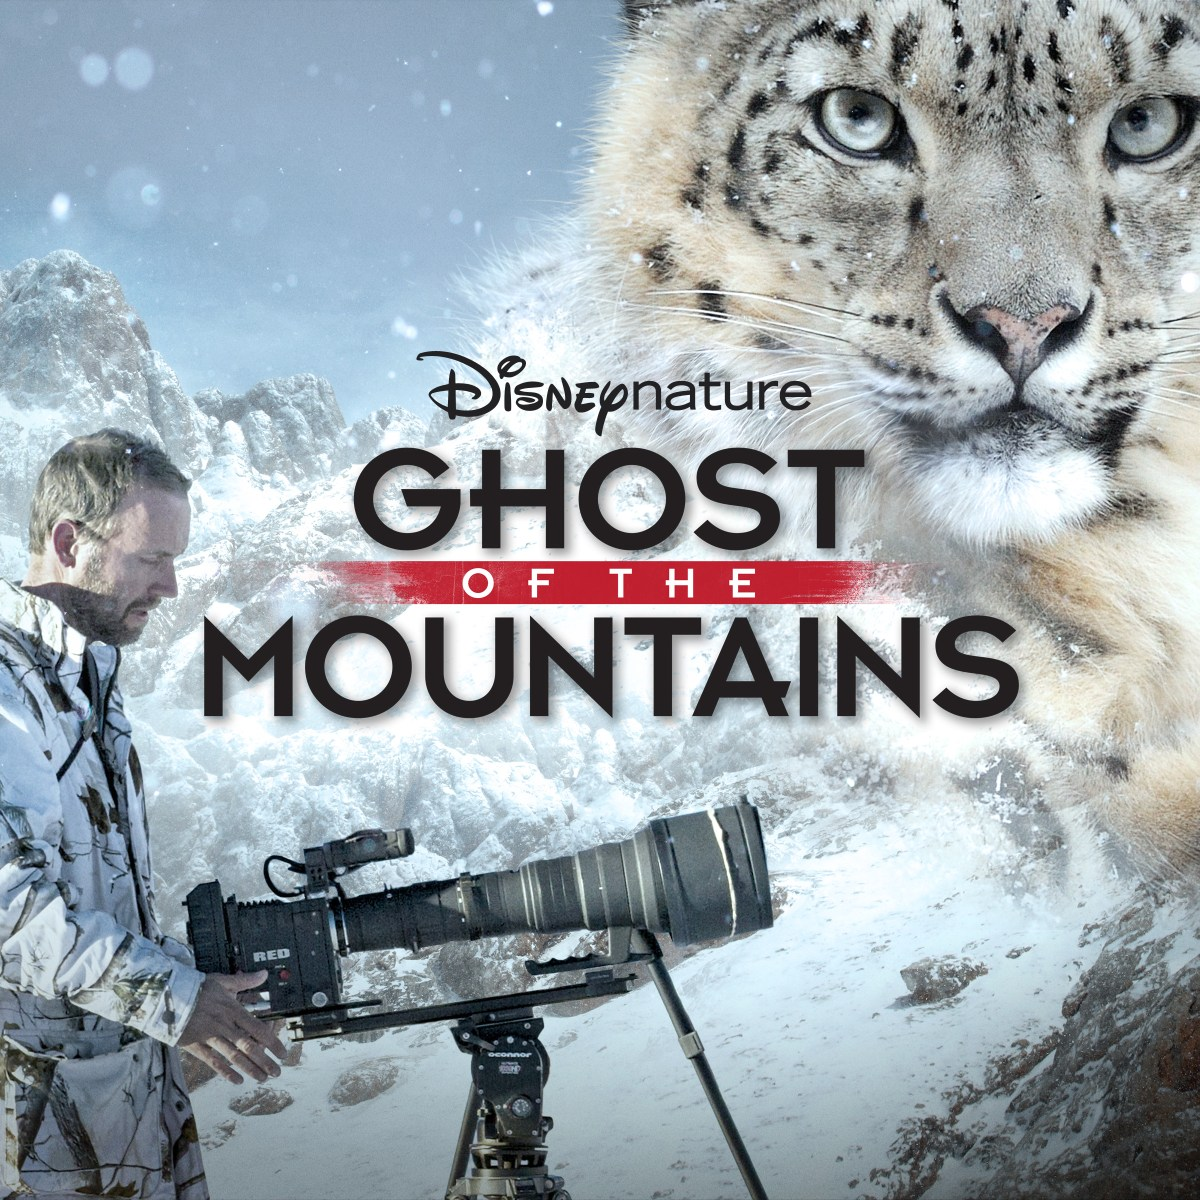 Ghosts Of The Mountains Home Release Announced By Walt Disney Studios